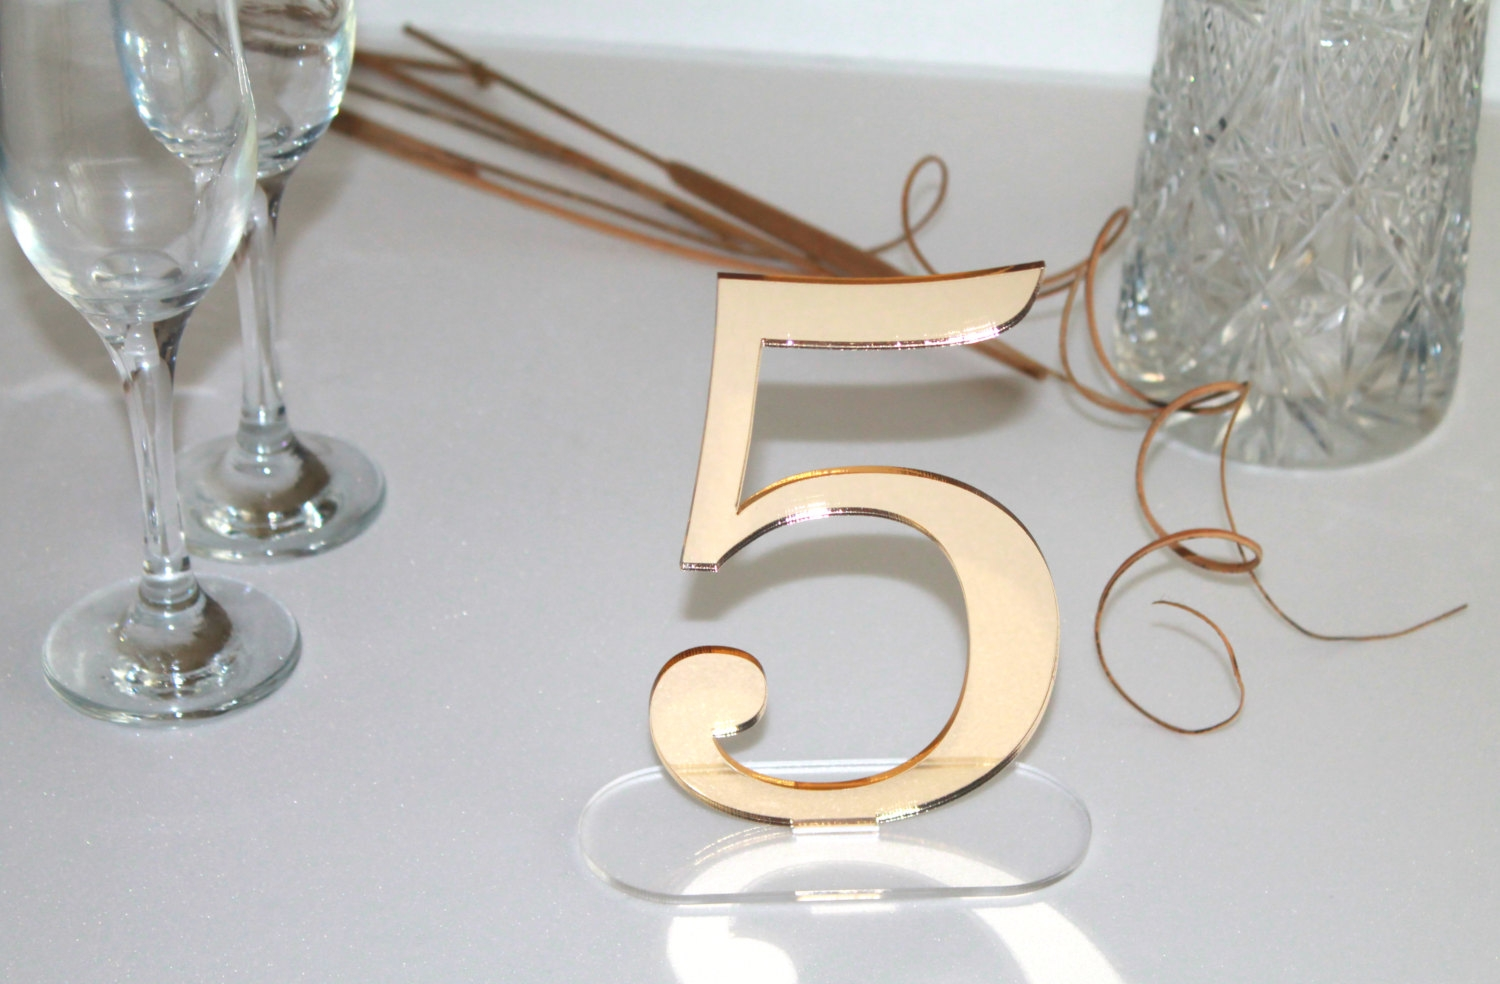 Mirror Table Numbers Etsy Inside Gold Table Mirror (Image 9 of 15)